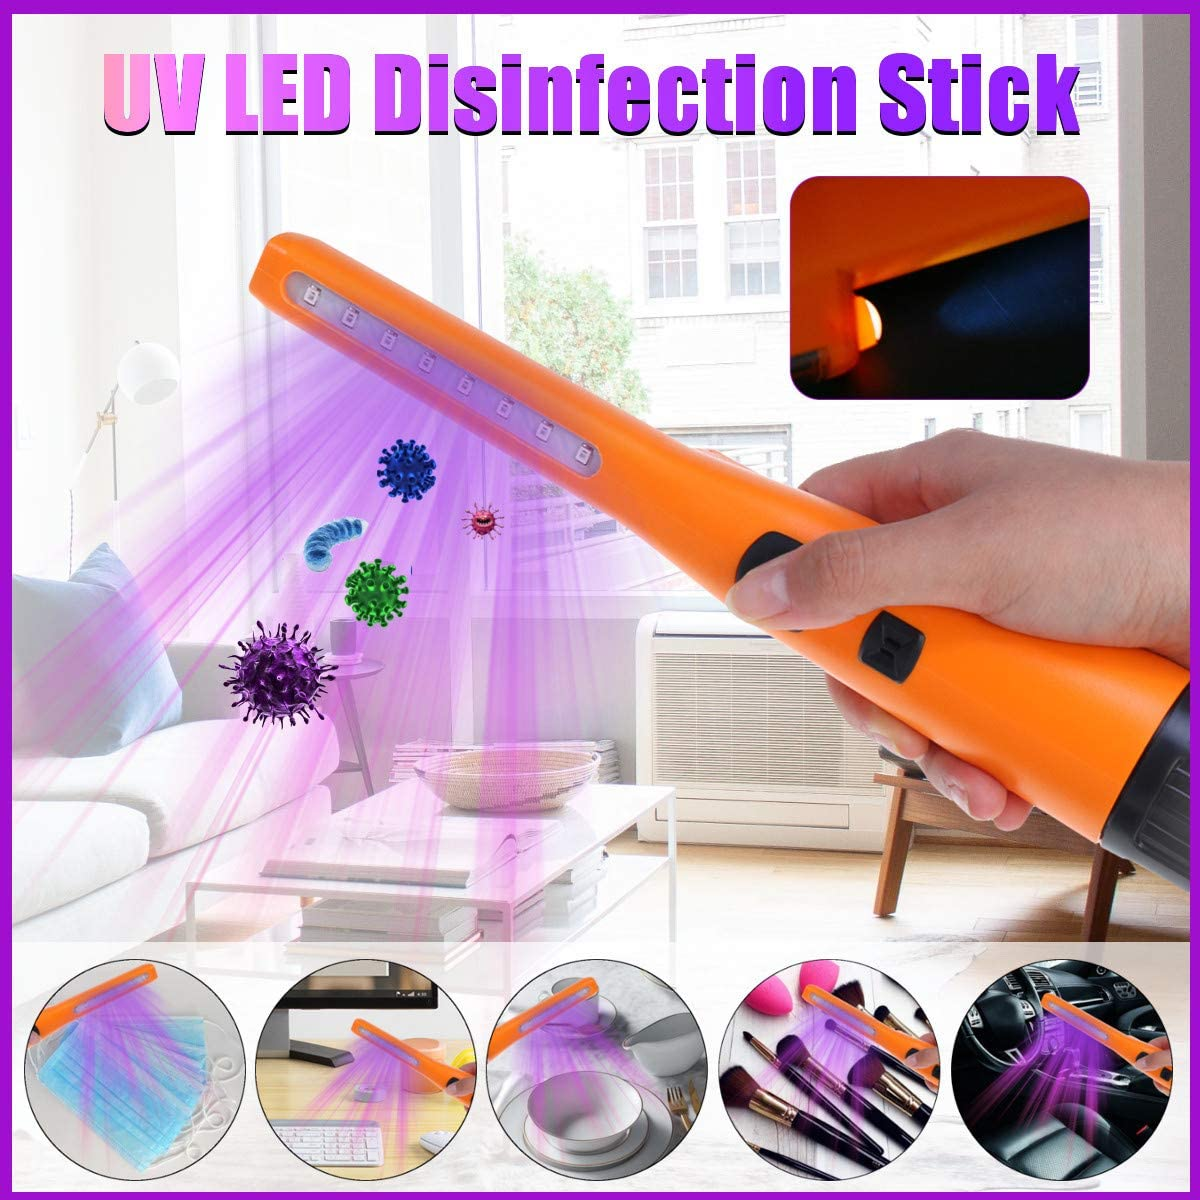 UV LED Disinfection Stick EIVOTOR UV lamp Portable Disinfection lamp USB germicidal Sterilization lamp Ozone sterilizer for Hotel Travel Office Business Trips to Reduce dust Mites